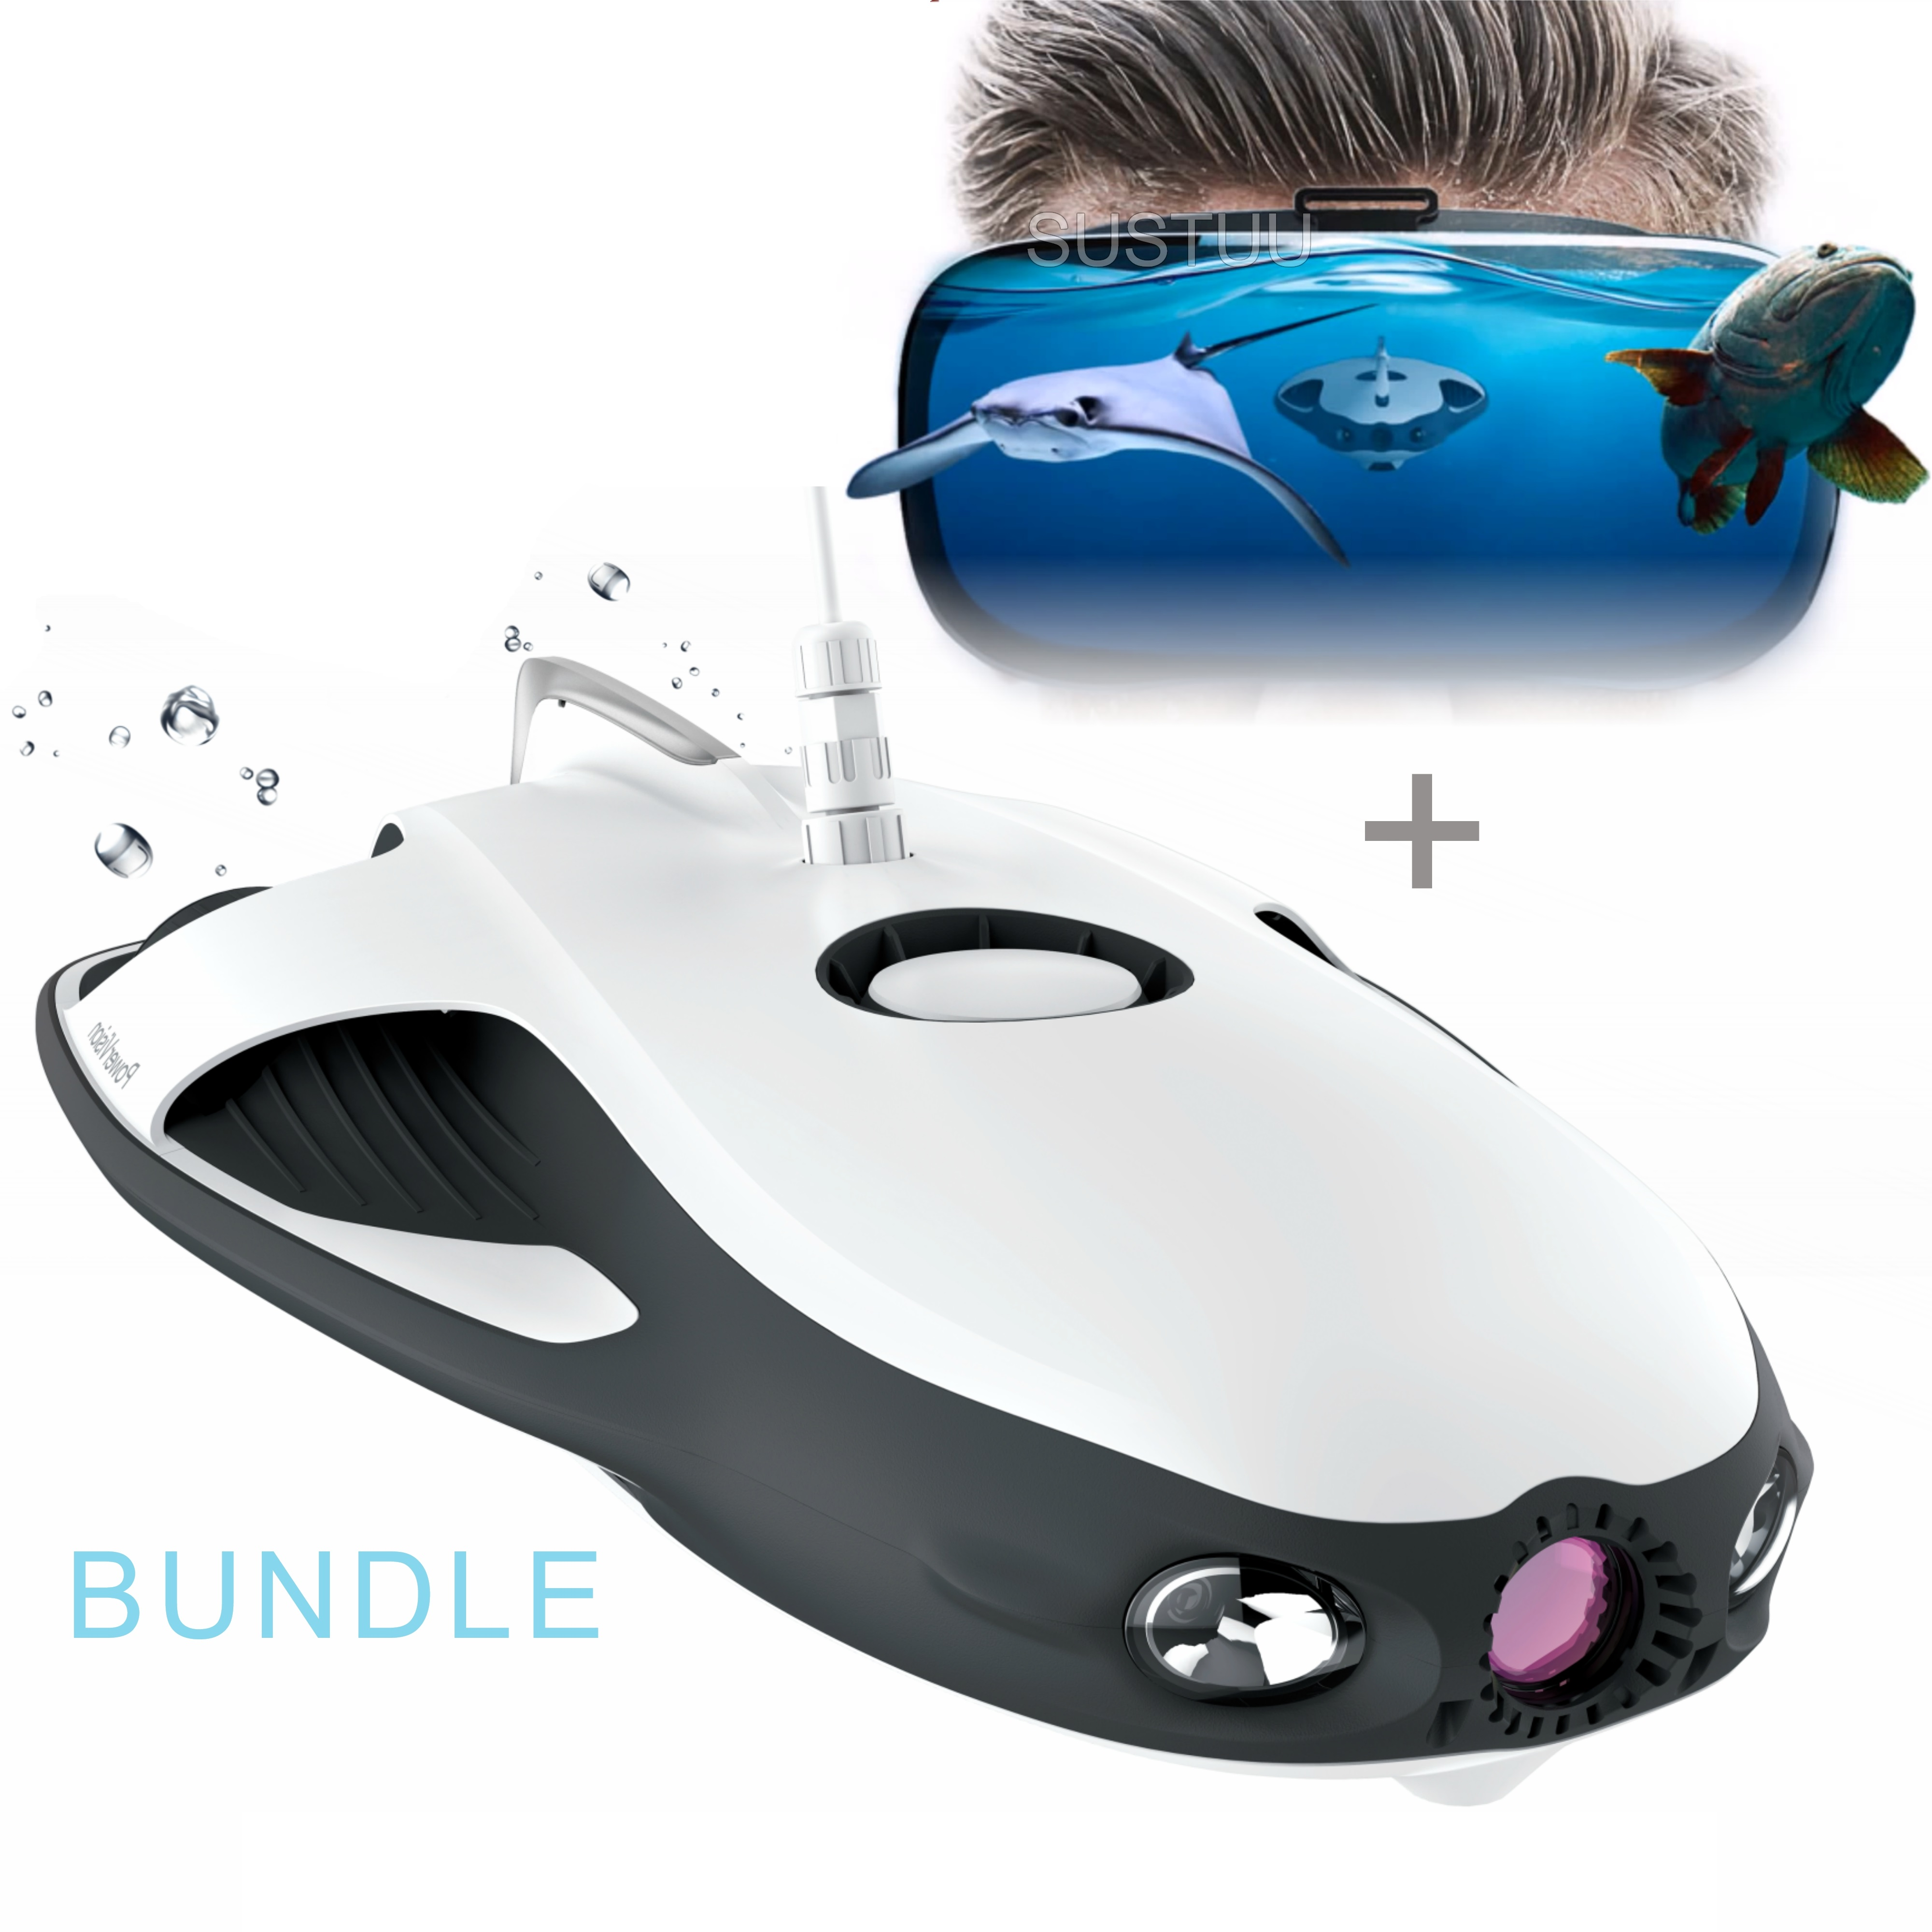 Powervision PowerRay Wizard Underwater Robot Drone + VR Goggle Kit|12MP 1080p|4K UHD Camera